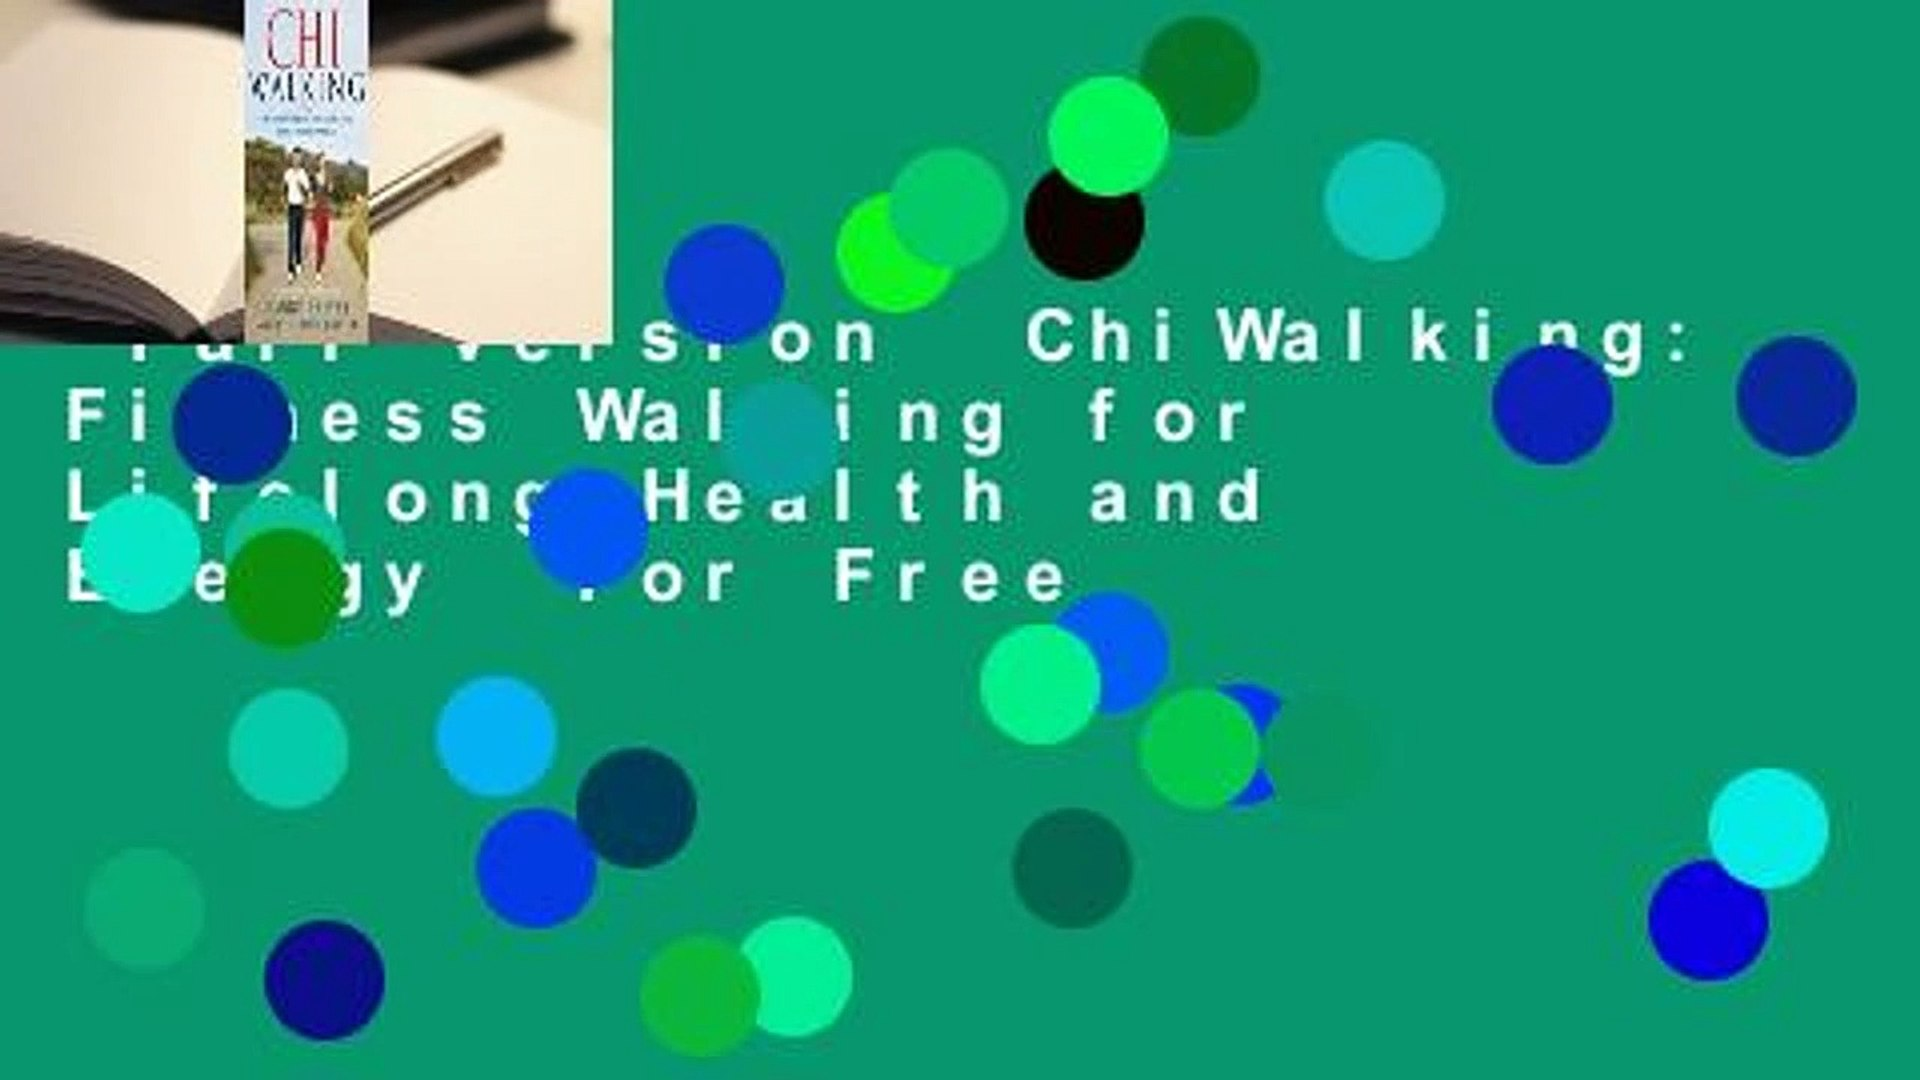 Full version  ChiWalking: Fitness Walking for Lifelong Health and Energy  For Free